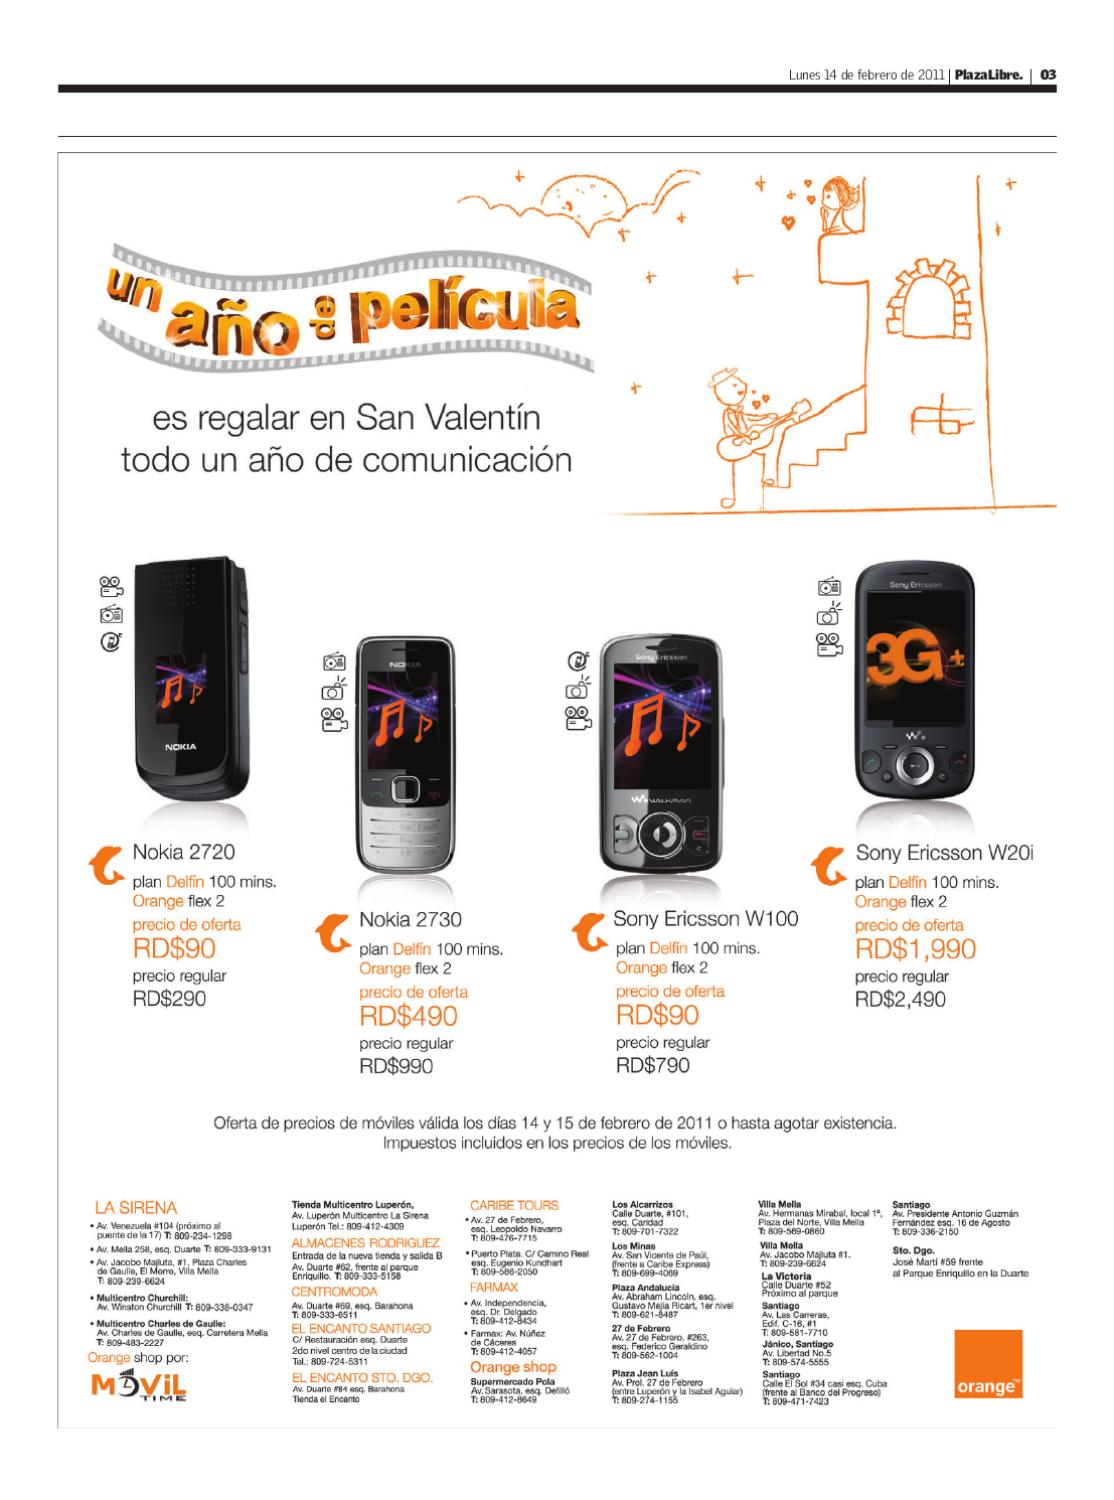 pl20110214 by Diario Libre - issuu